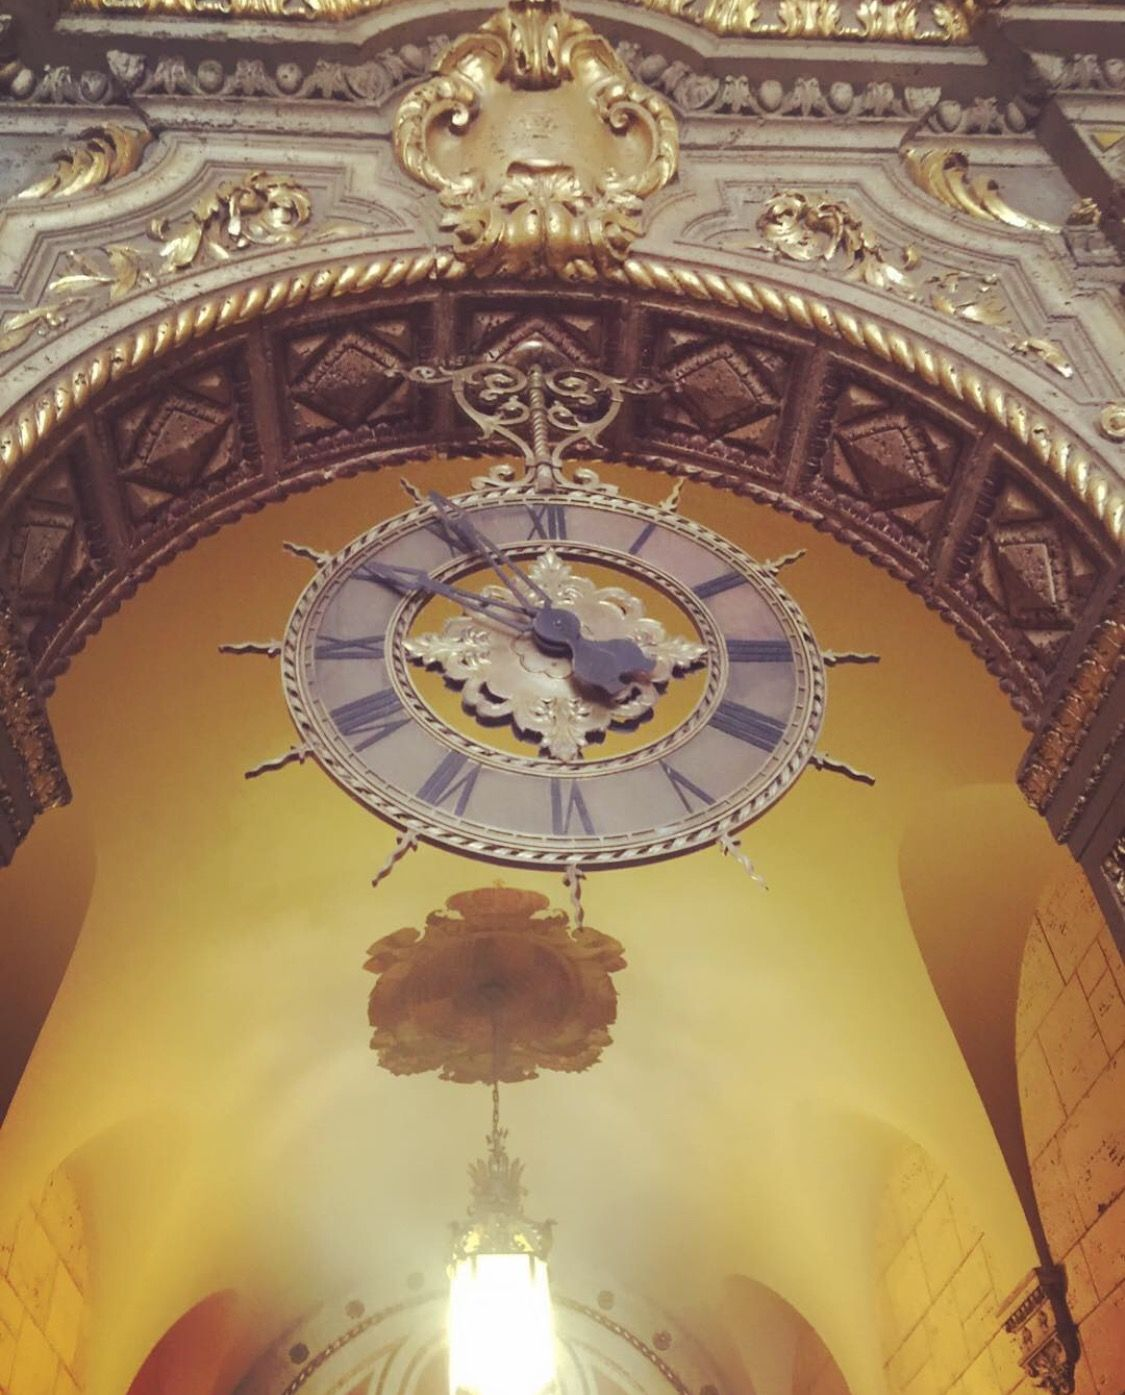 The clock is ticking, the time is near, looking forward to the weekend that is almost here!!! ⏱⏰🕰 #intimatelyimprint #imprintlc #imprintaffair #time #tgif #fridays #friday #photography #biltmore #biltmorehotel #photograph